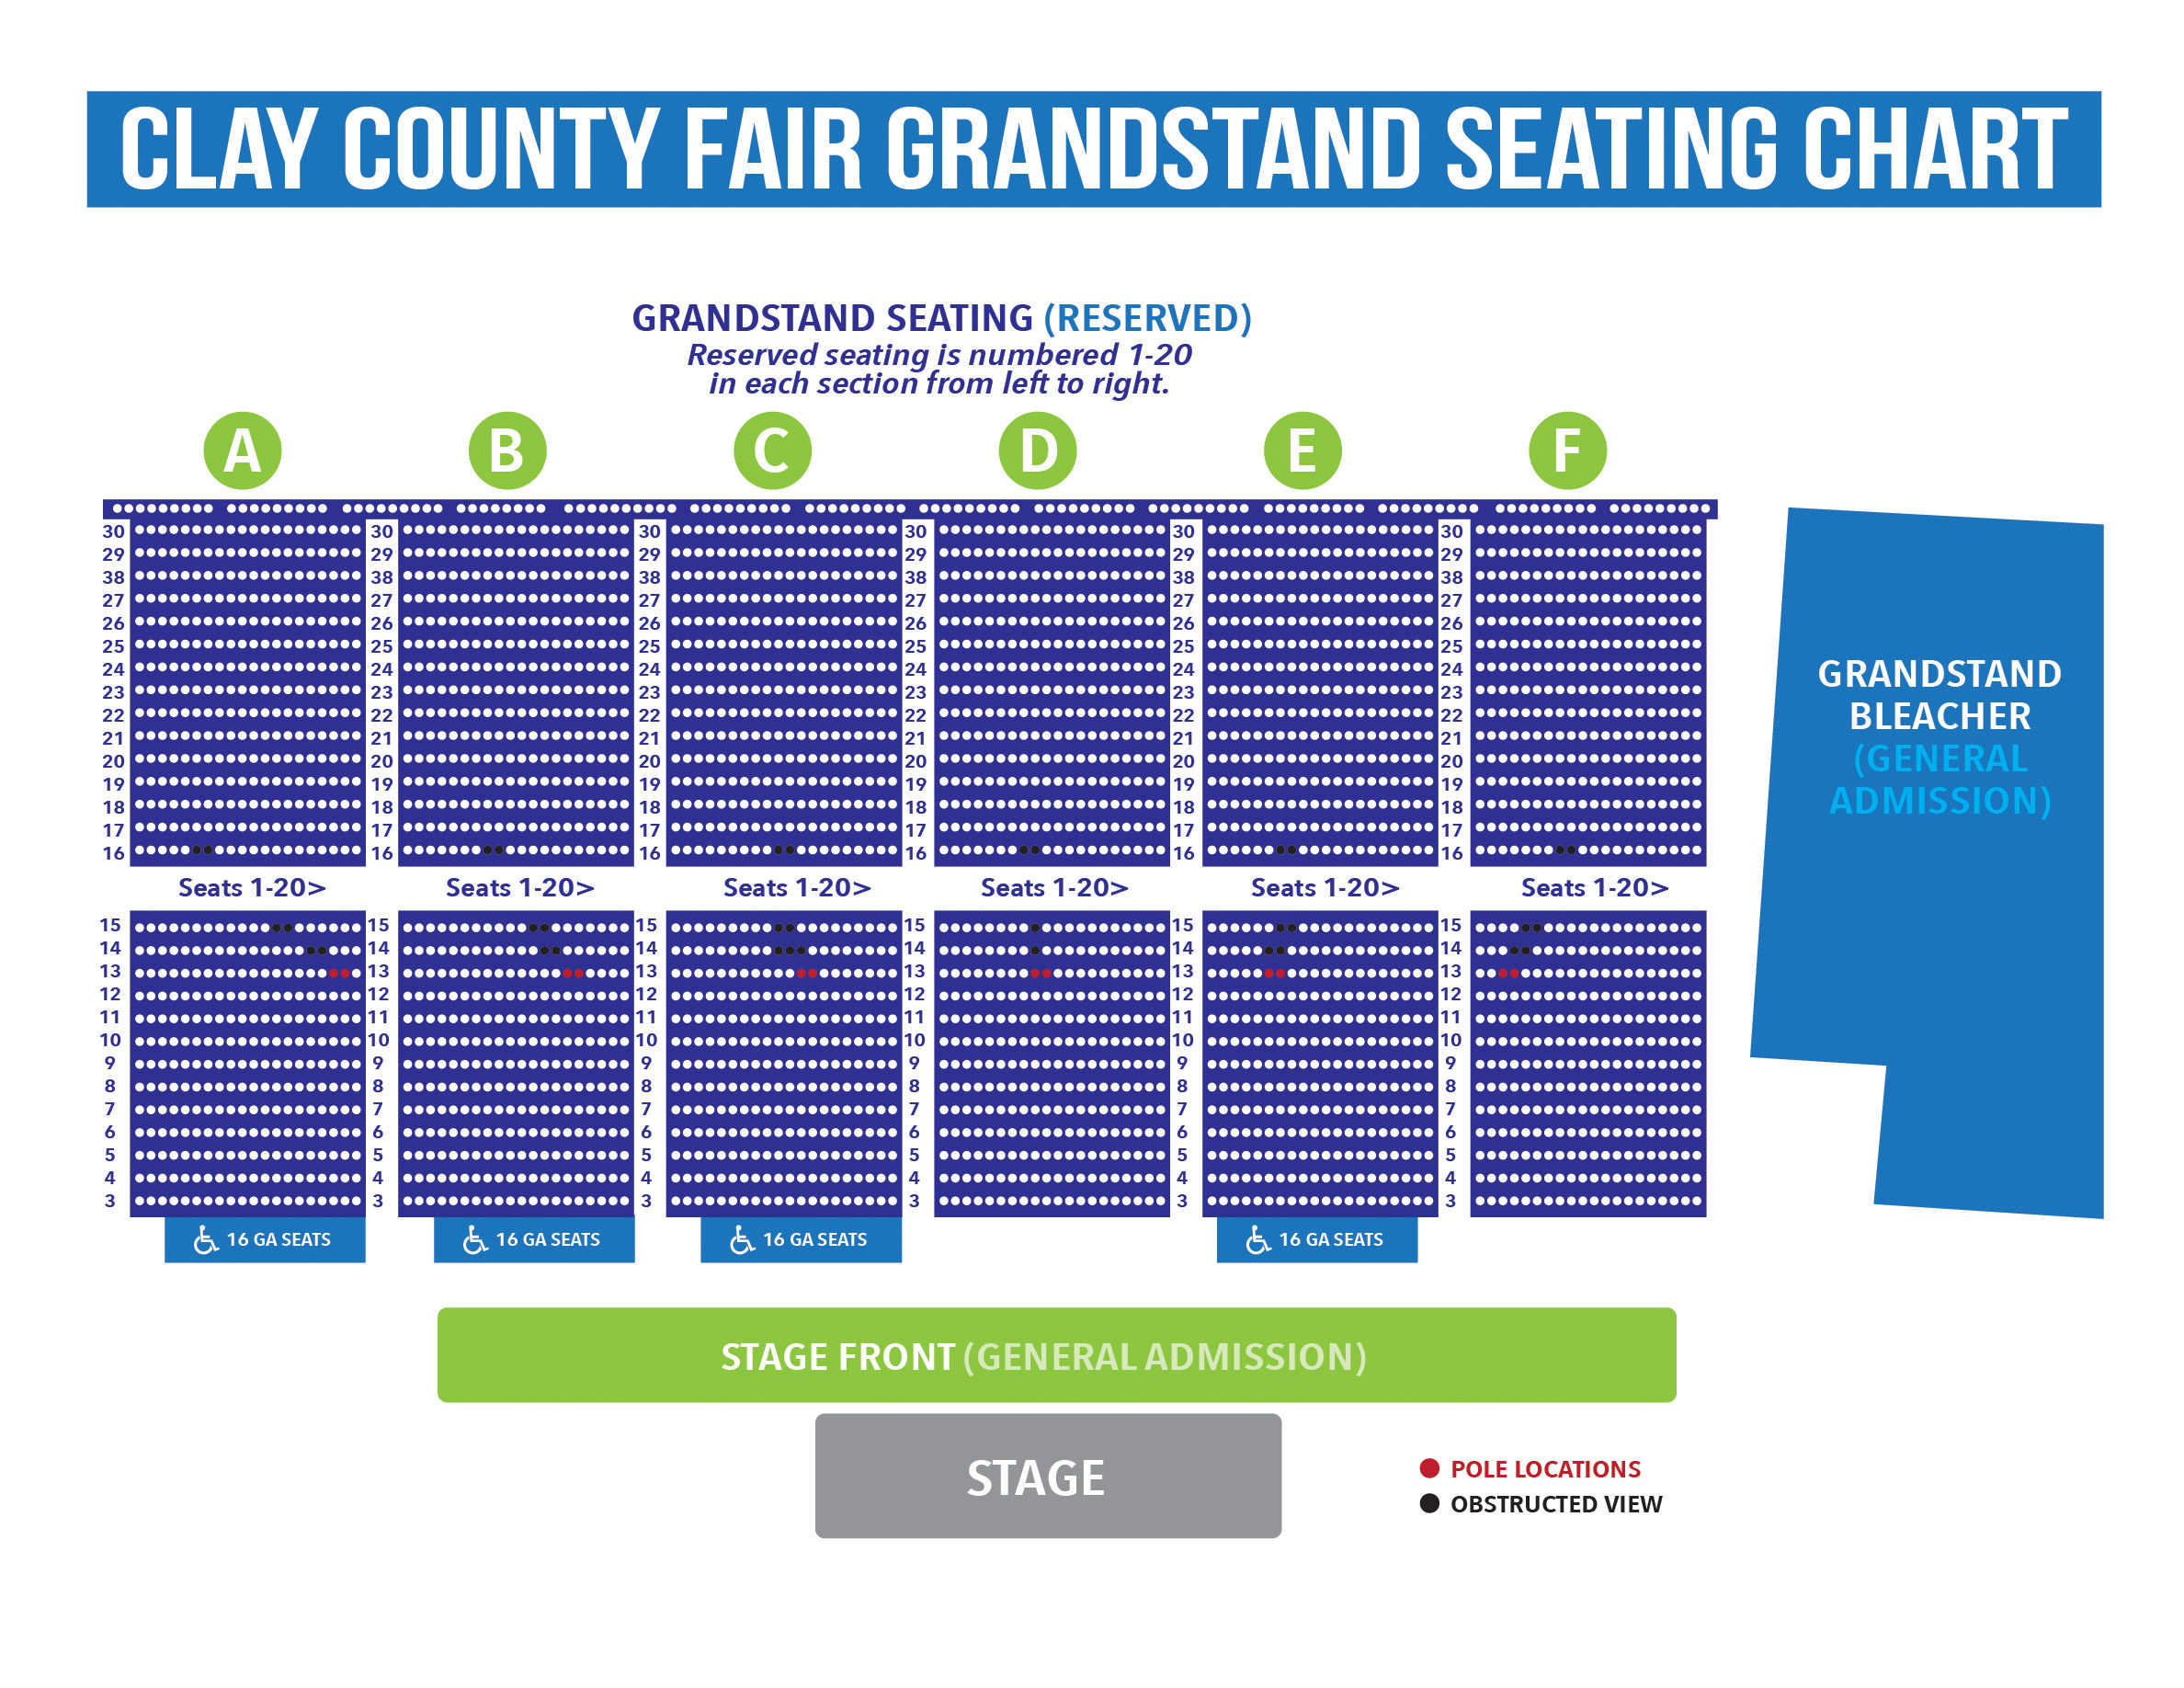 Grandstand Seating Chart Clay County Fair Ticket Ing Pro Tips